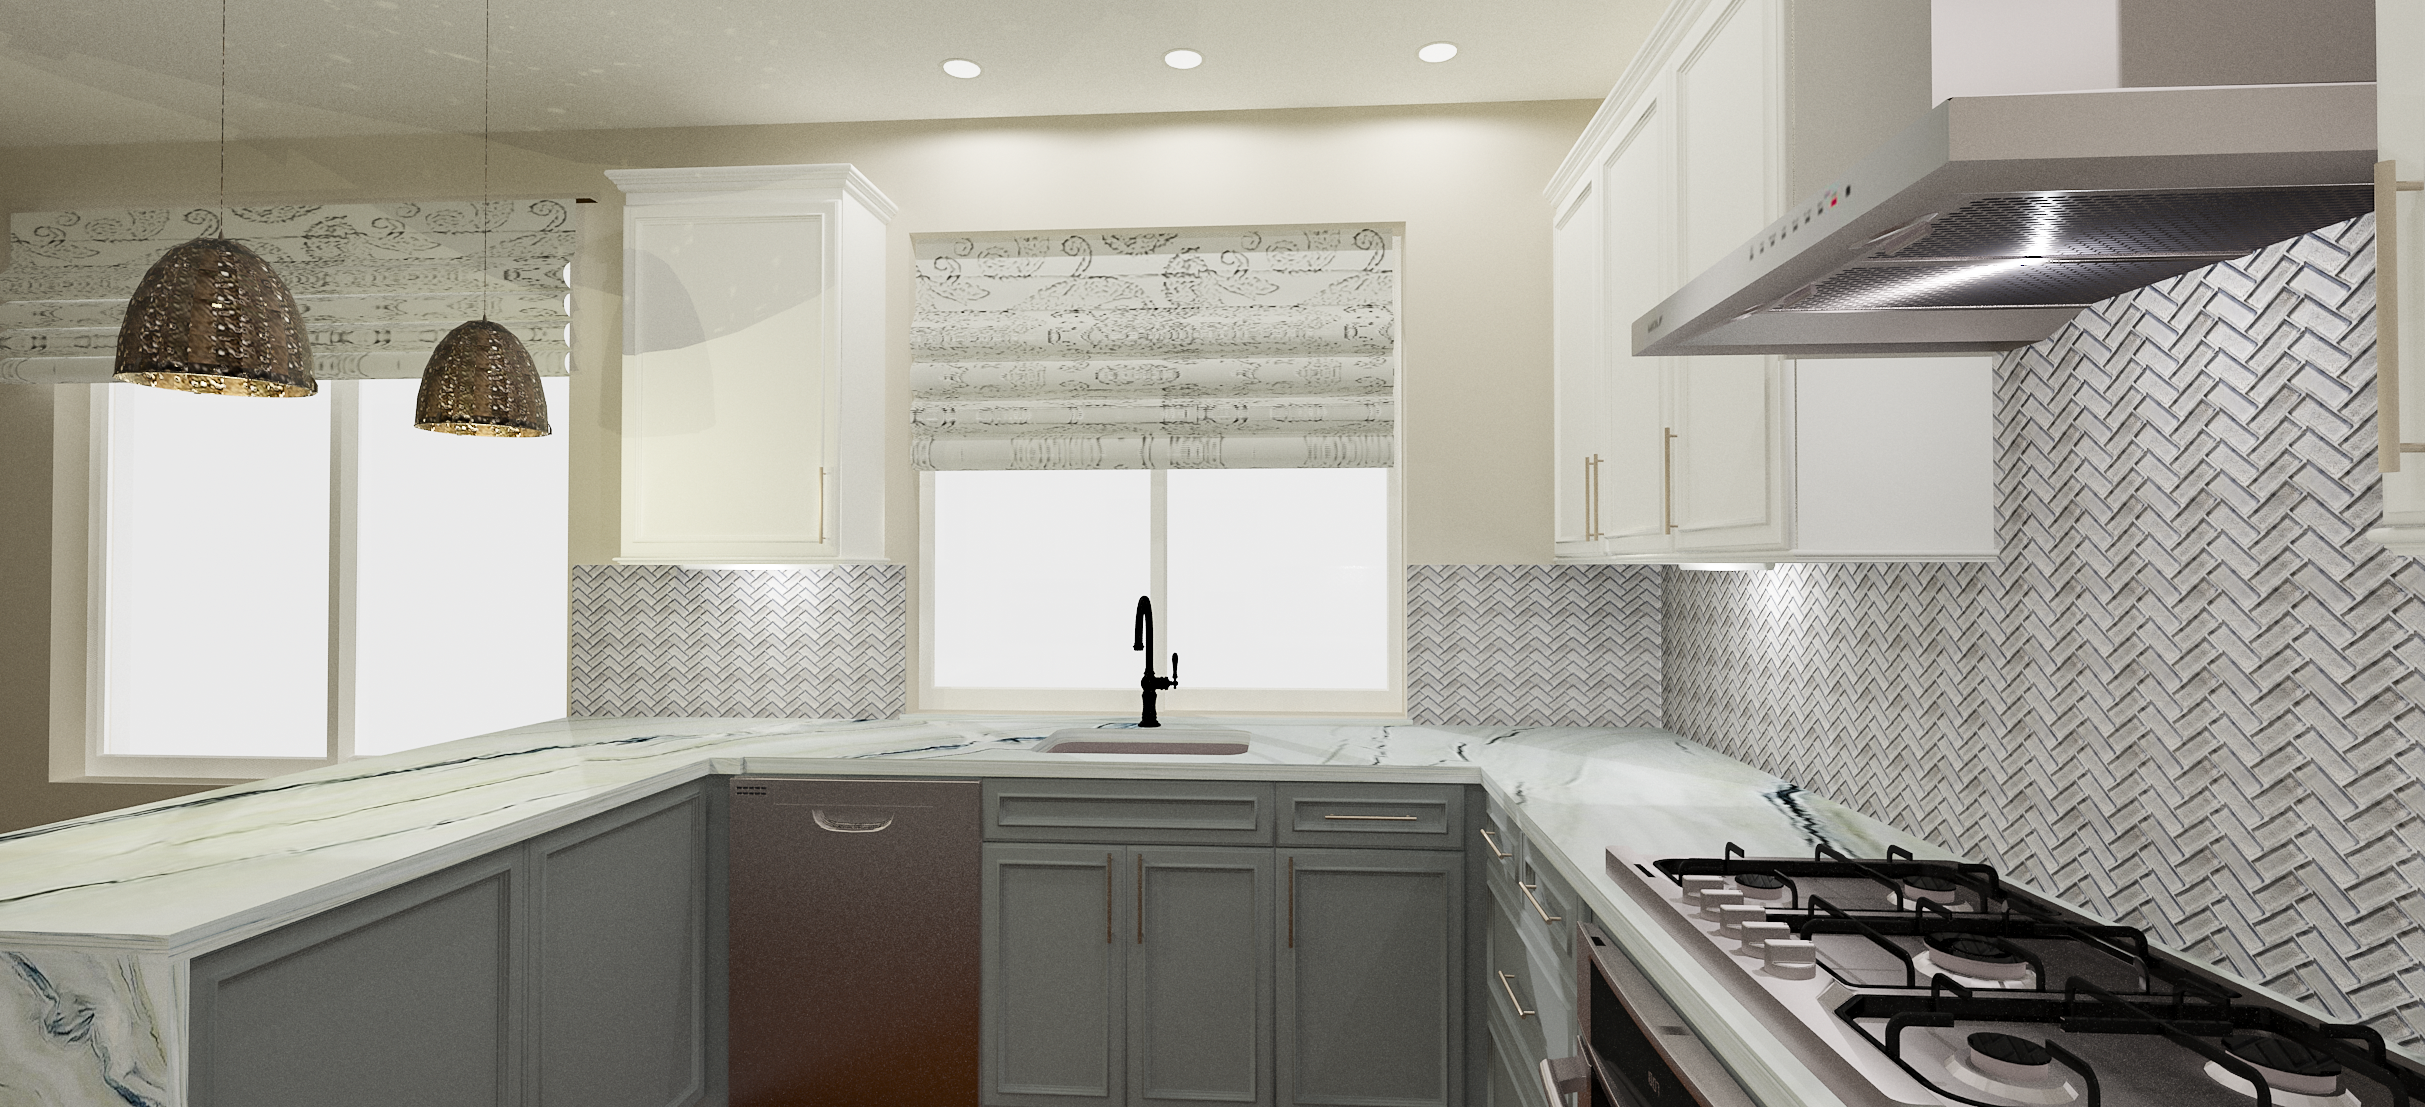 Kitchen Concept 2 | Designed by 9:Ten Design.png